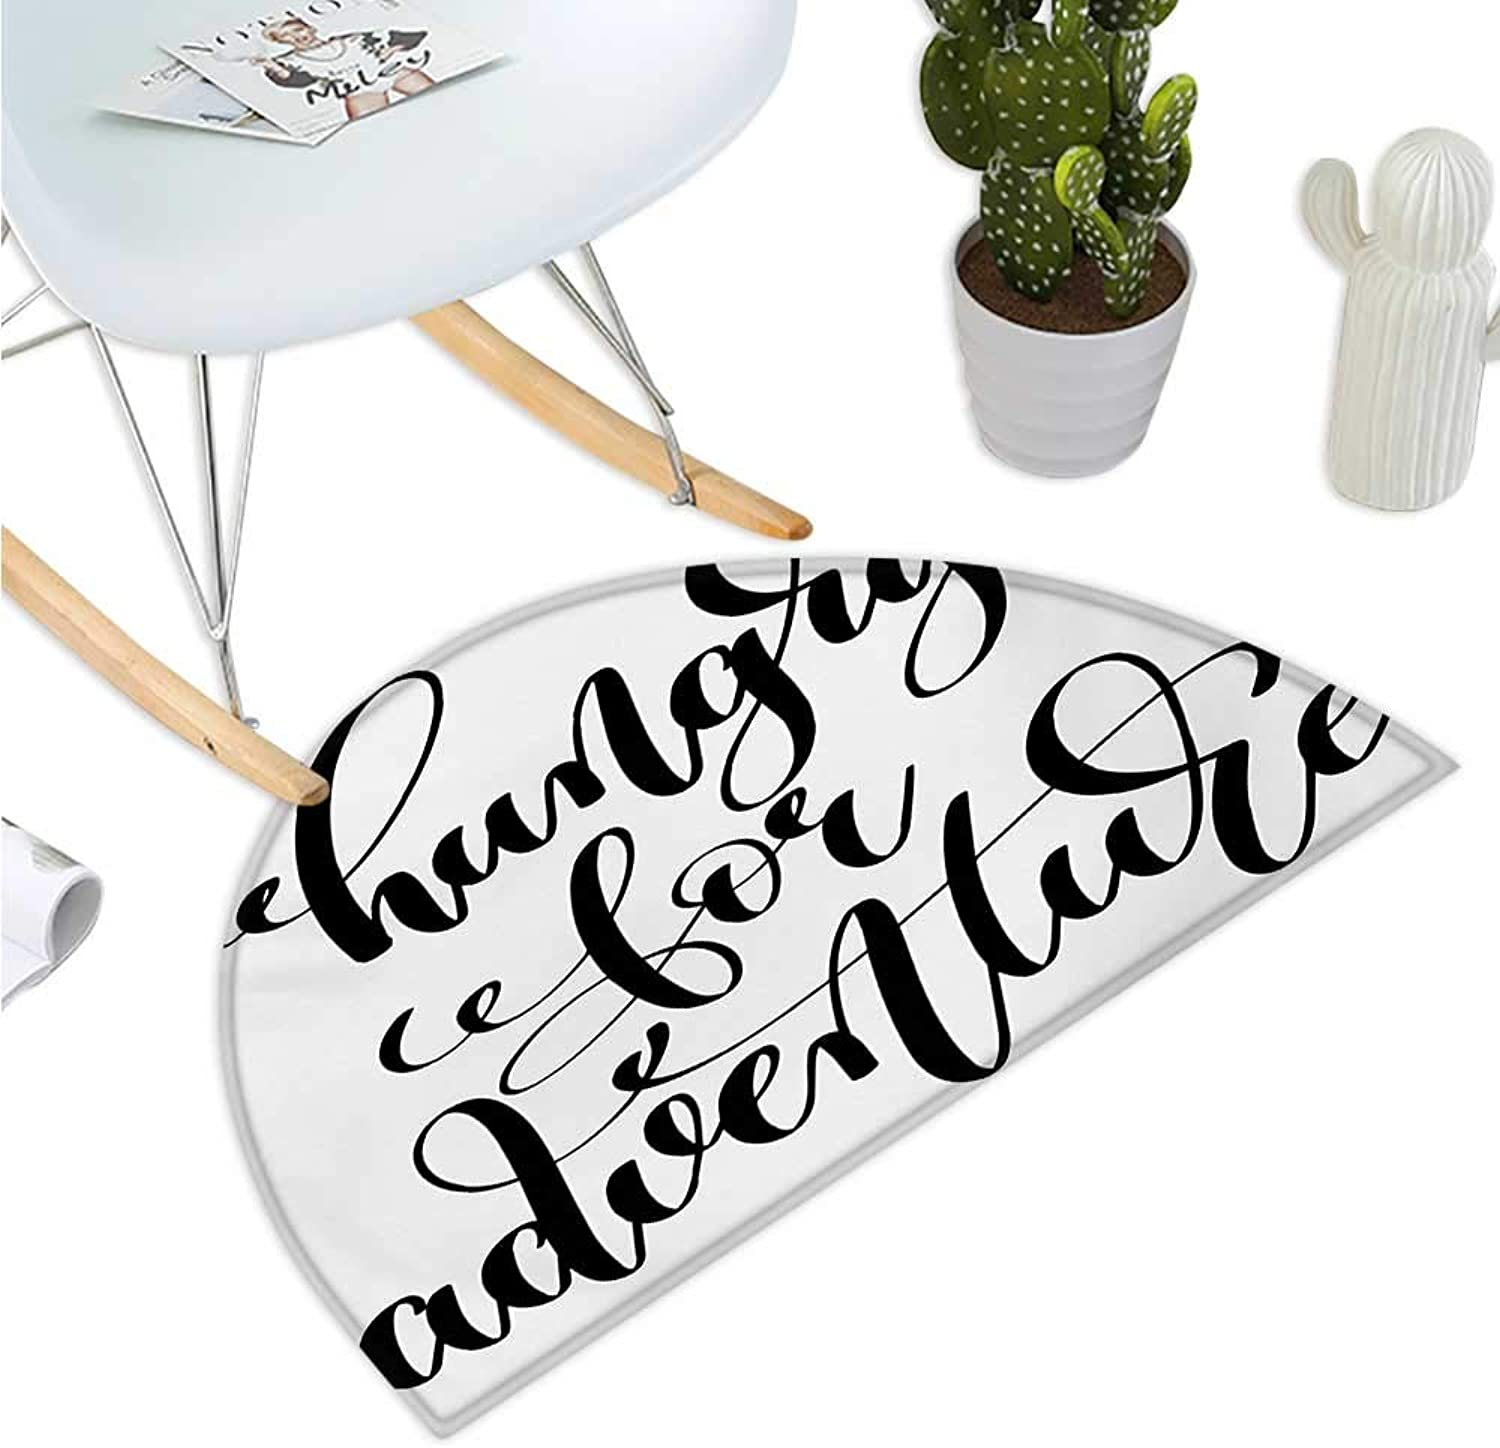 Adventure Semicircular Cushion Monochrome Quote Hungry for Adventure Journey Challenge Hand Written Letters Halfmoon doormats H 35.4  xD 53.1  Black White